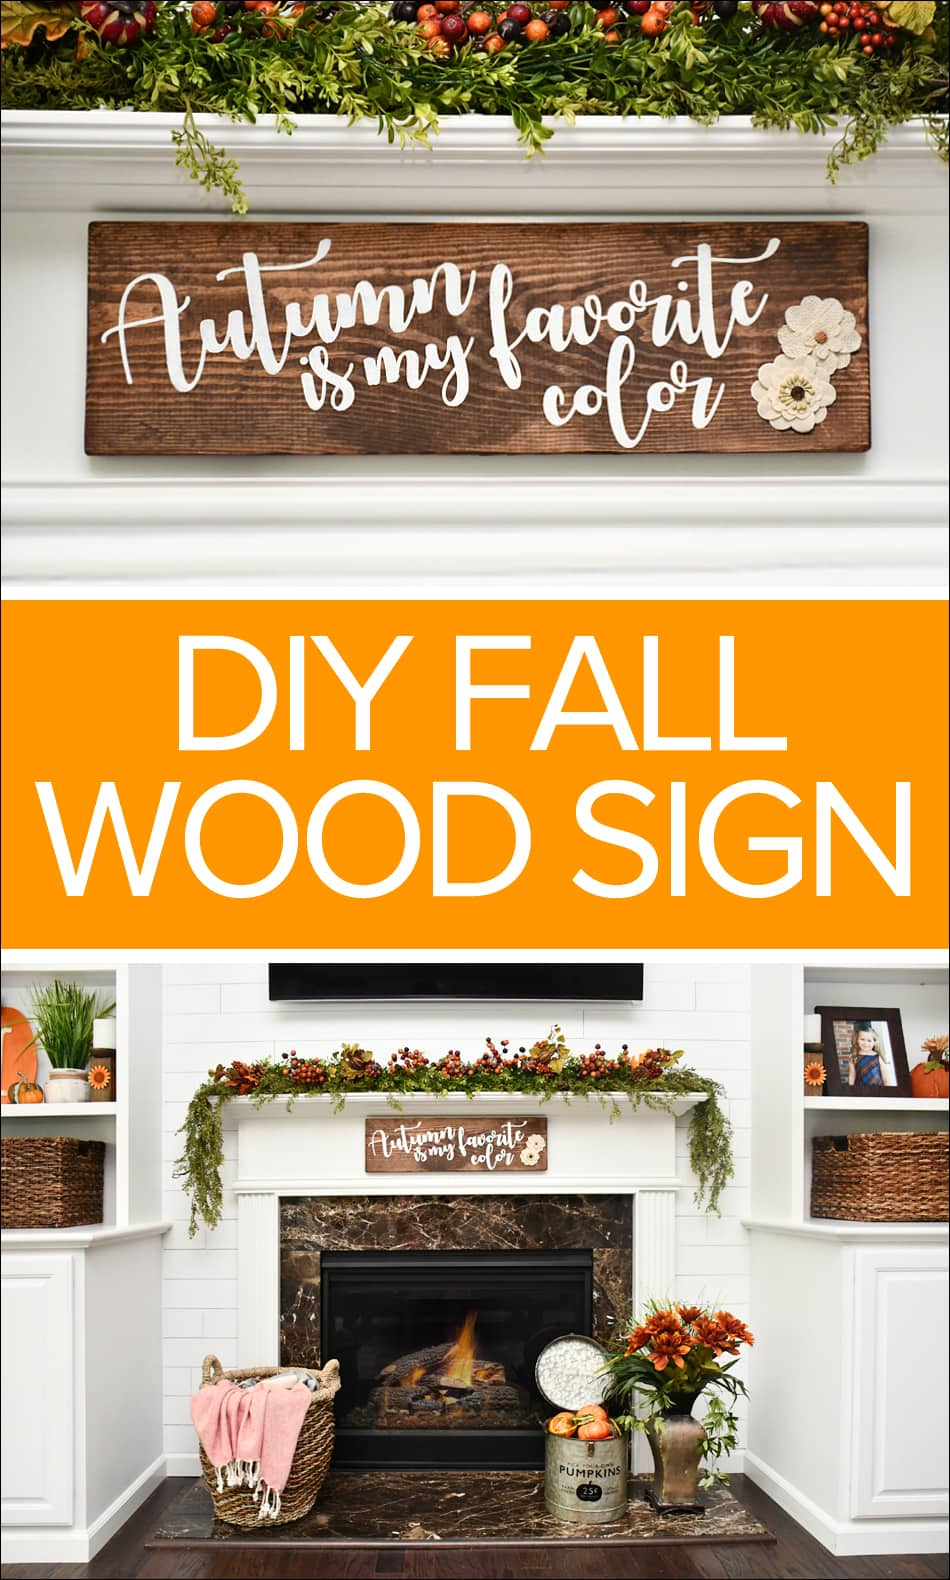 Fall Diy Wood Sign Using Cricut Vinyl Cutting Machine